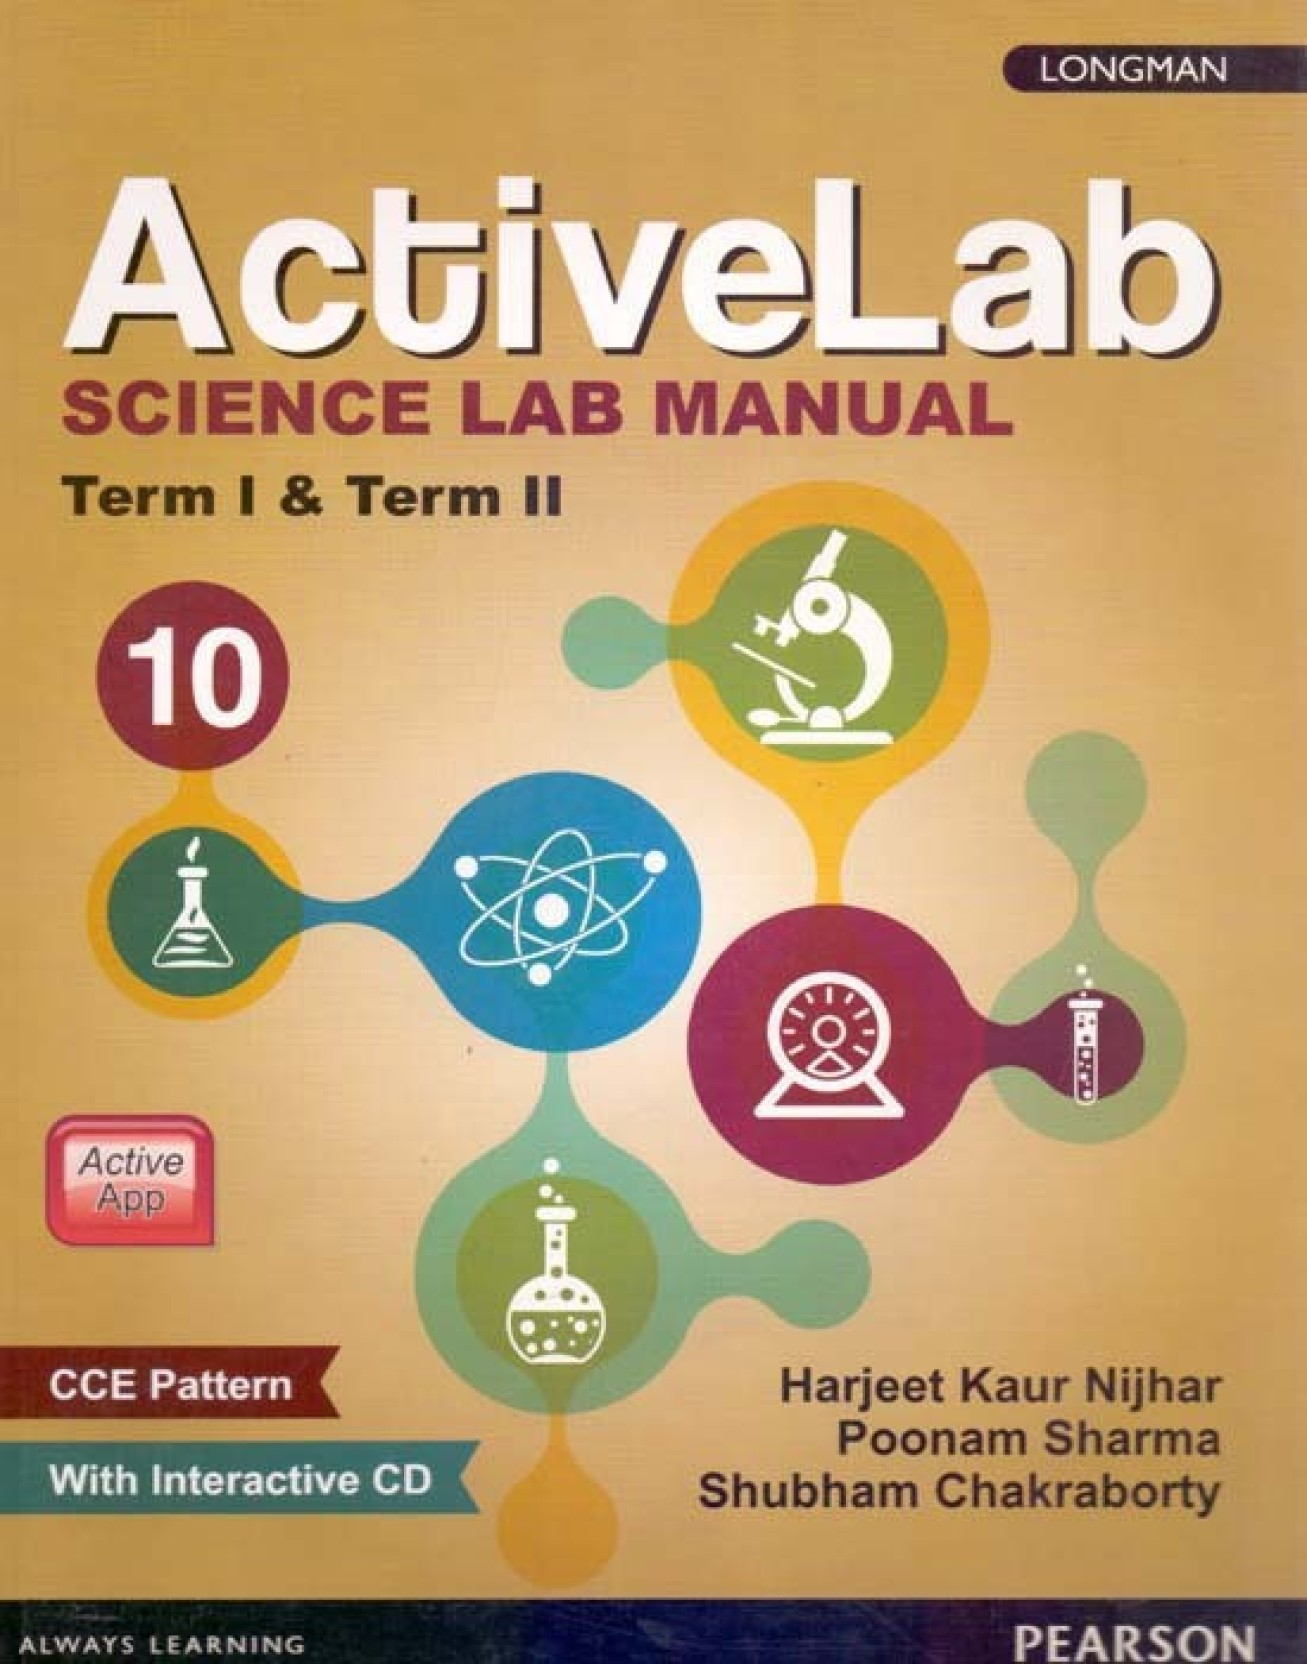 Activelab Science Lab Manual Term I&II Class - 10. Share